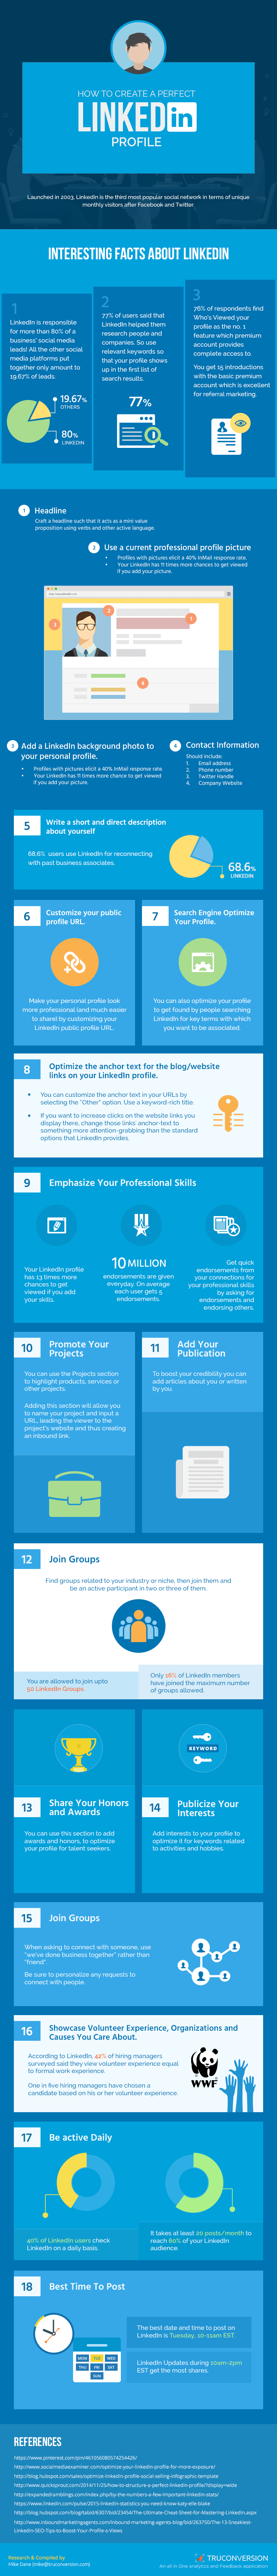 Infographic with tips to optimize LinkedIn Profile